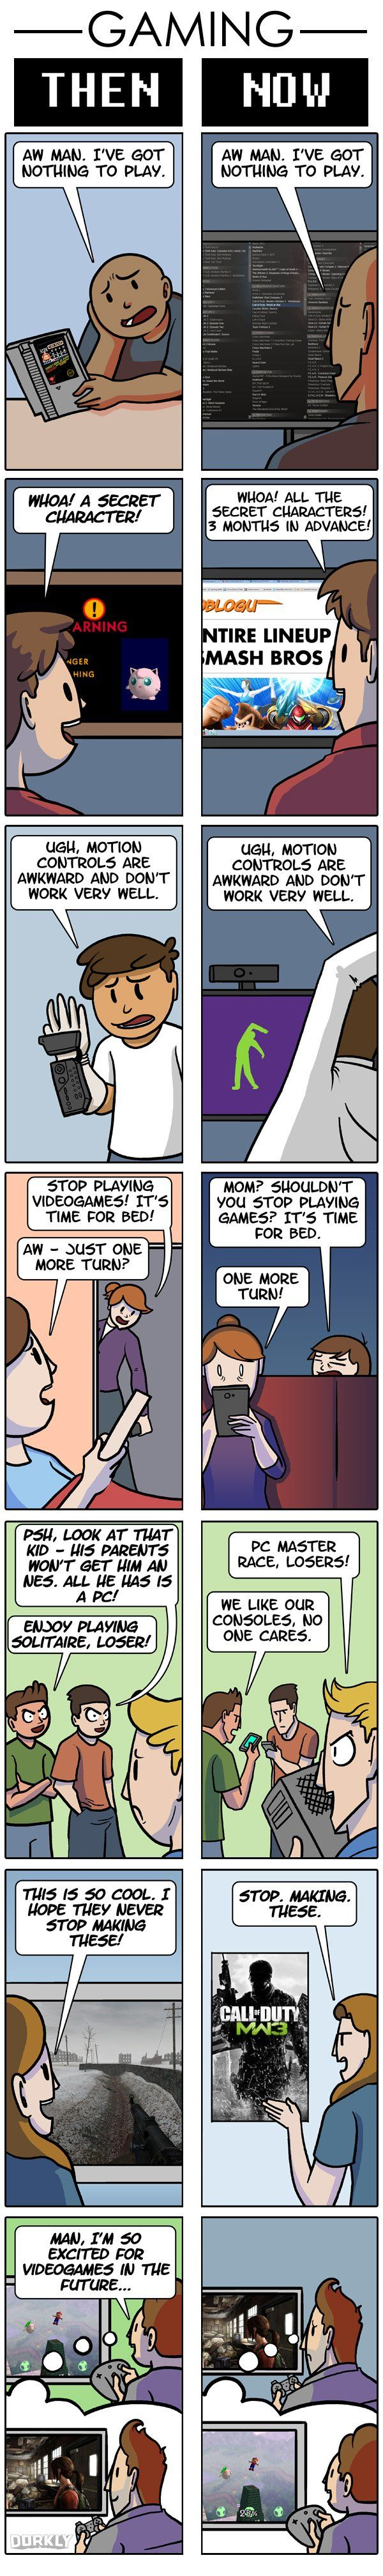 Gaming then and now part 4 #Dorkly